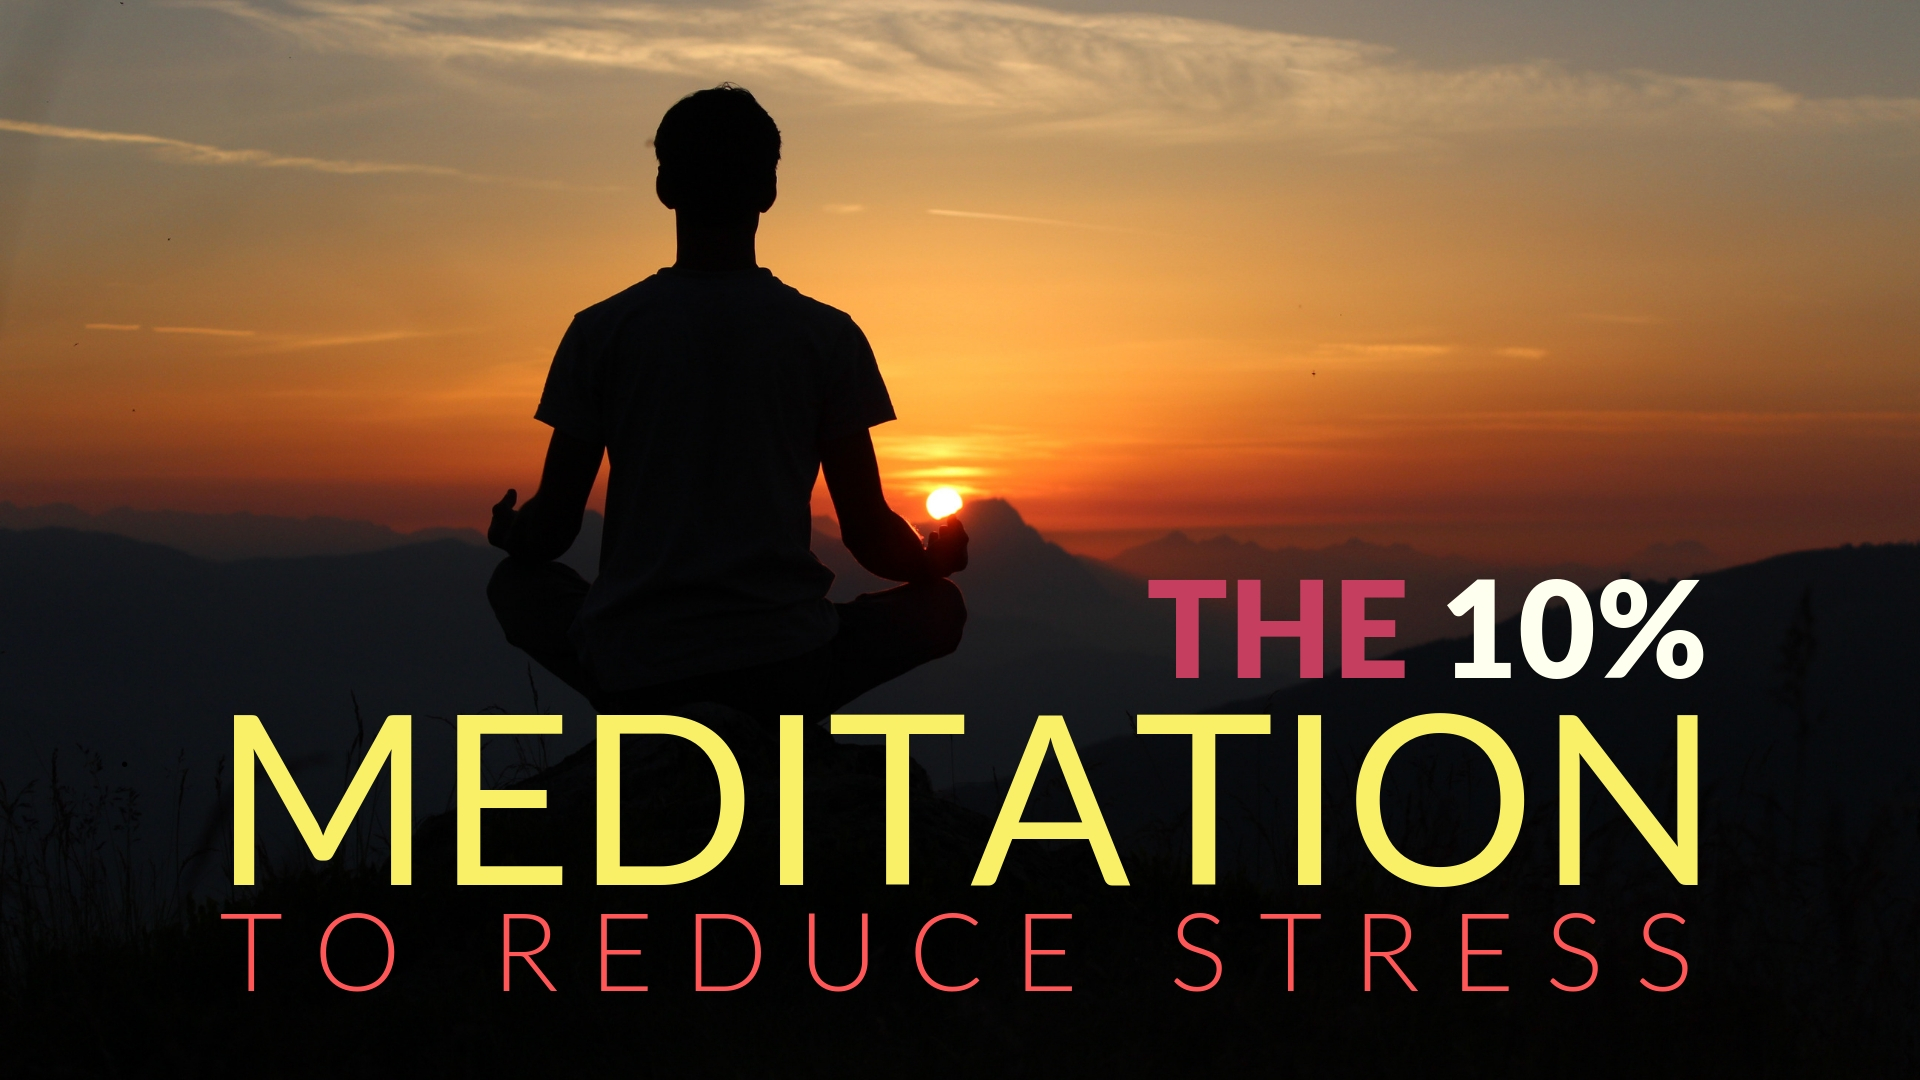 The 10 Percent Meditation for relieving stress.jpg